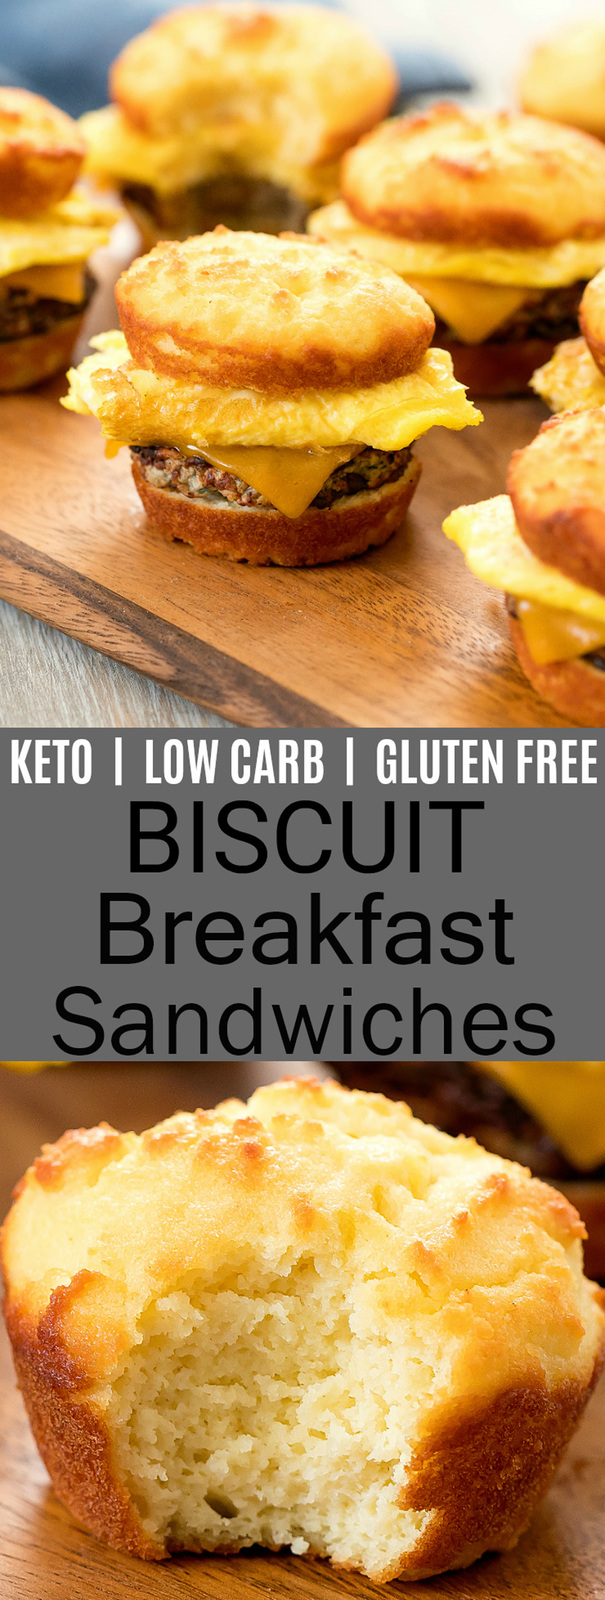 Low Carb Keto Biscuit Breakfast Sandwiches. These mini sandwiches are made with super easy, soft and tender biscuits. They store and reheat well, making them great for meal prep